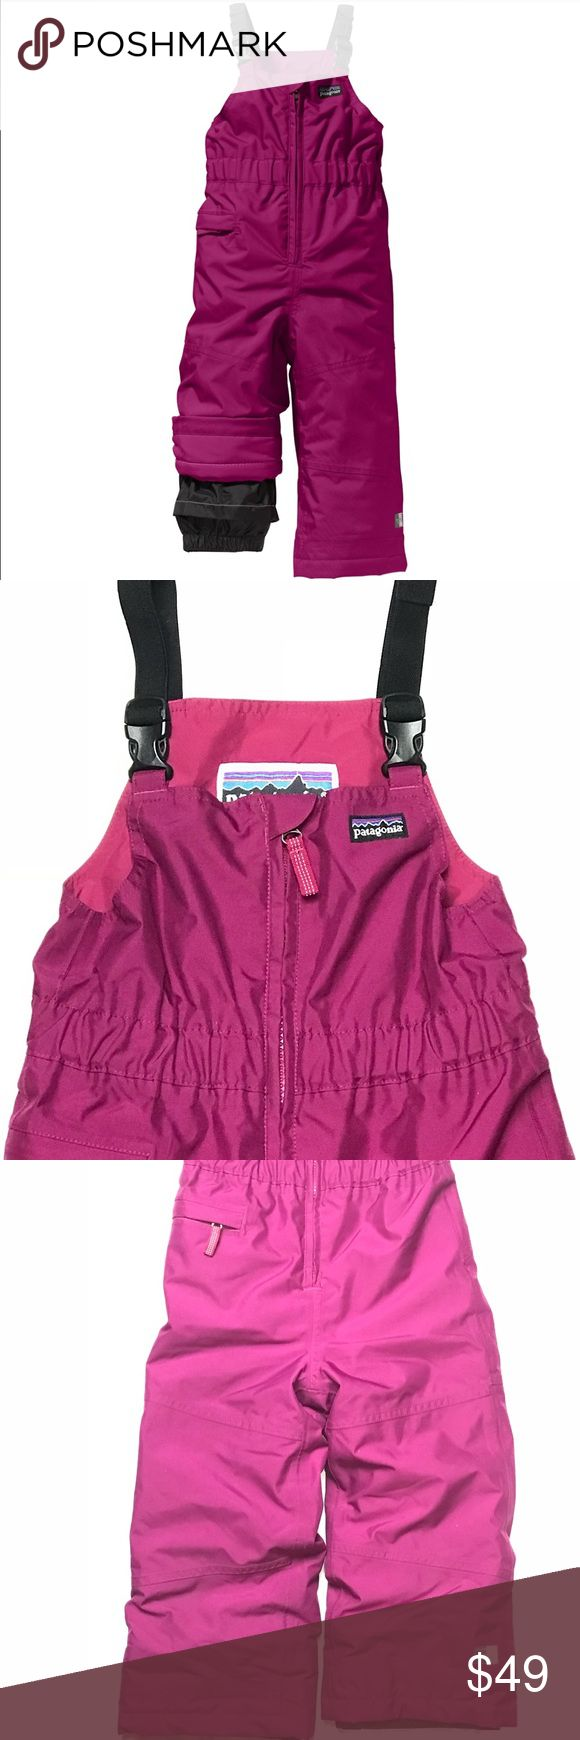 Patagonia Snow Bib Cold weather Overalls Patagonia Snow bib Size 4T  Great snow bib for the little one from your fav brand! Features grow-fit feature H2No Performance Standard Shell 100% Polyester   Color: Purple Patagonia One Pieces